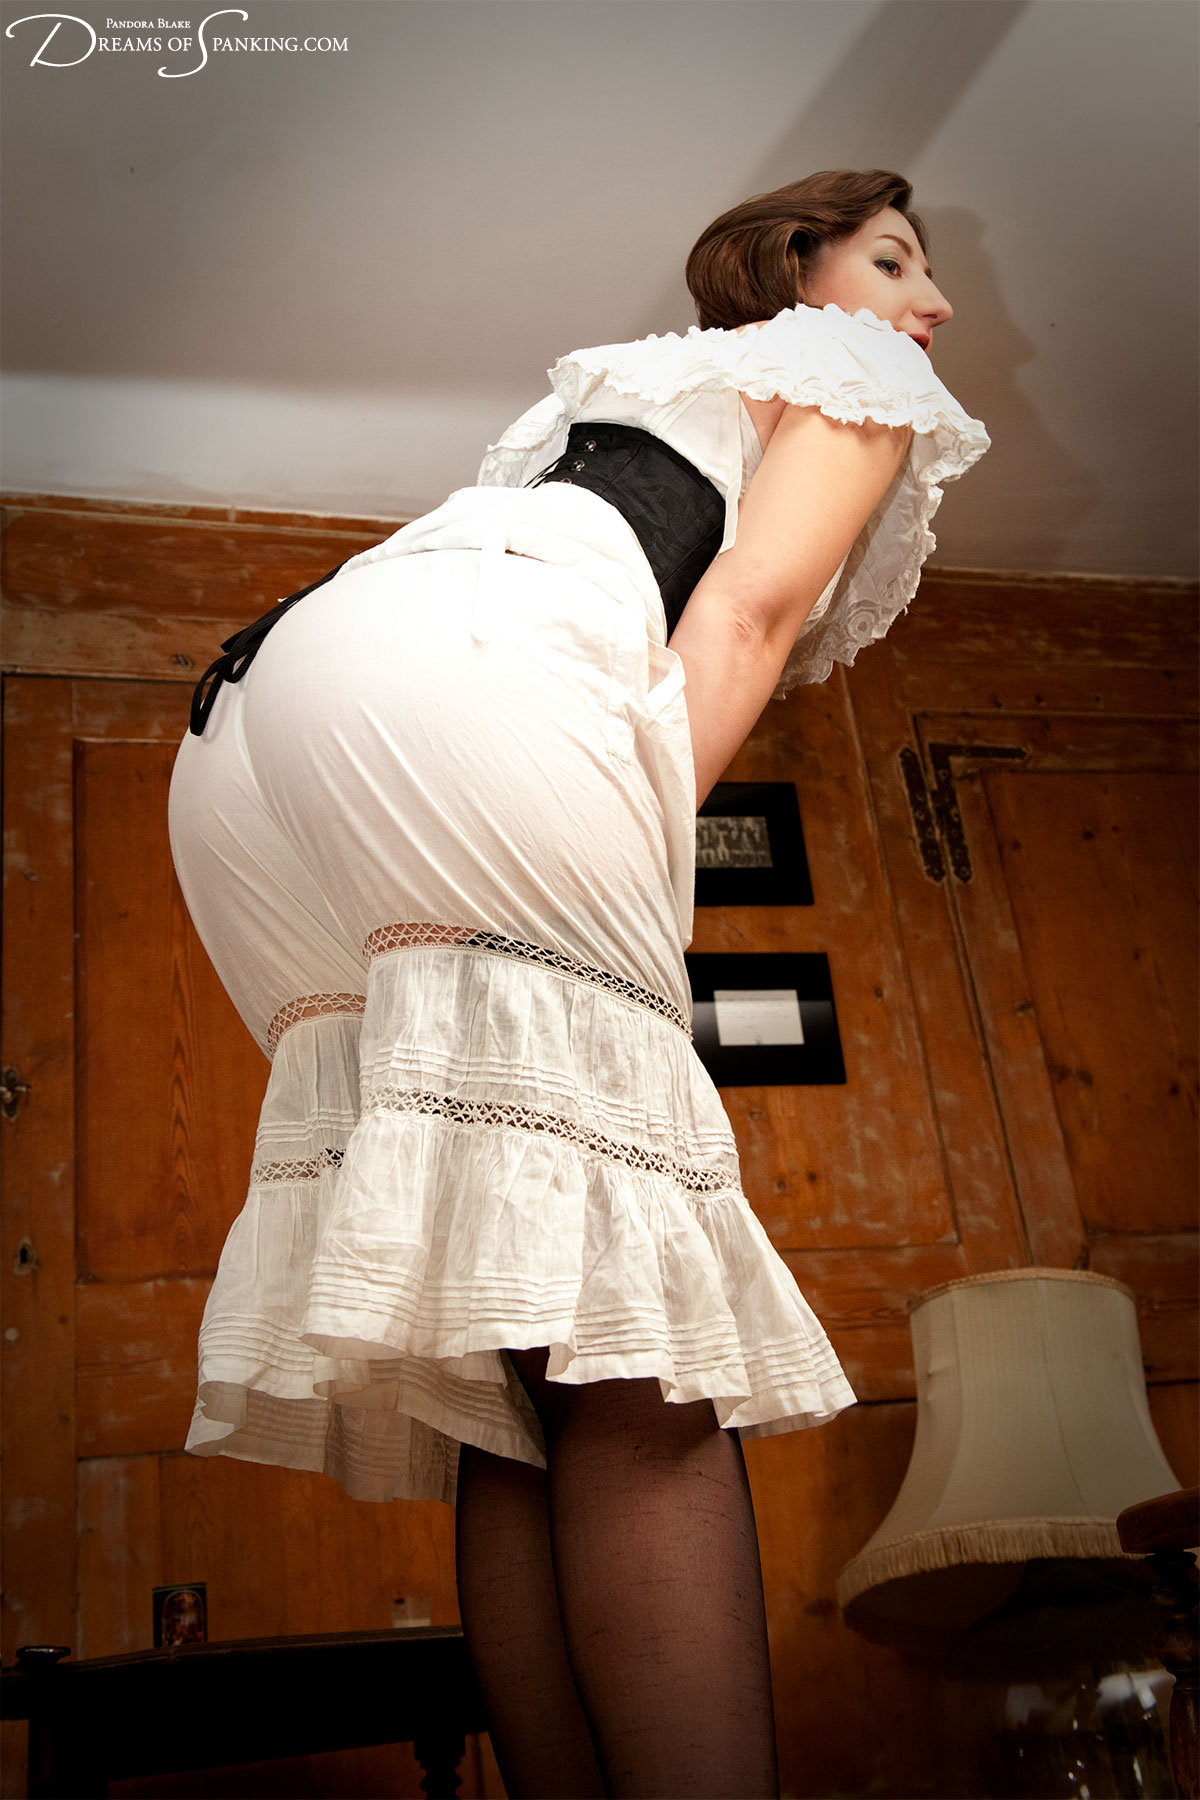 Victorian wench Pandora Blake is punished by Thomas Cameron at Dreams of Spanking